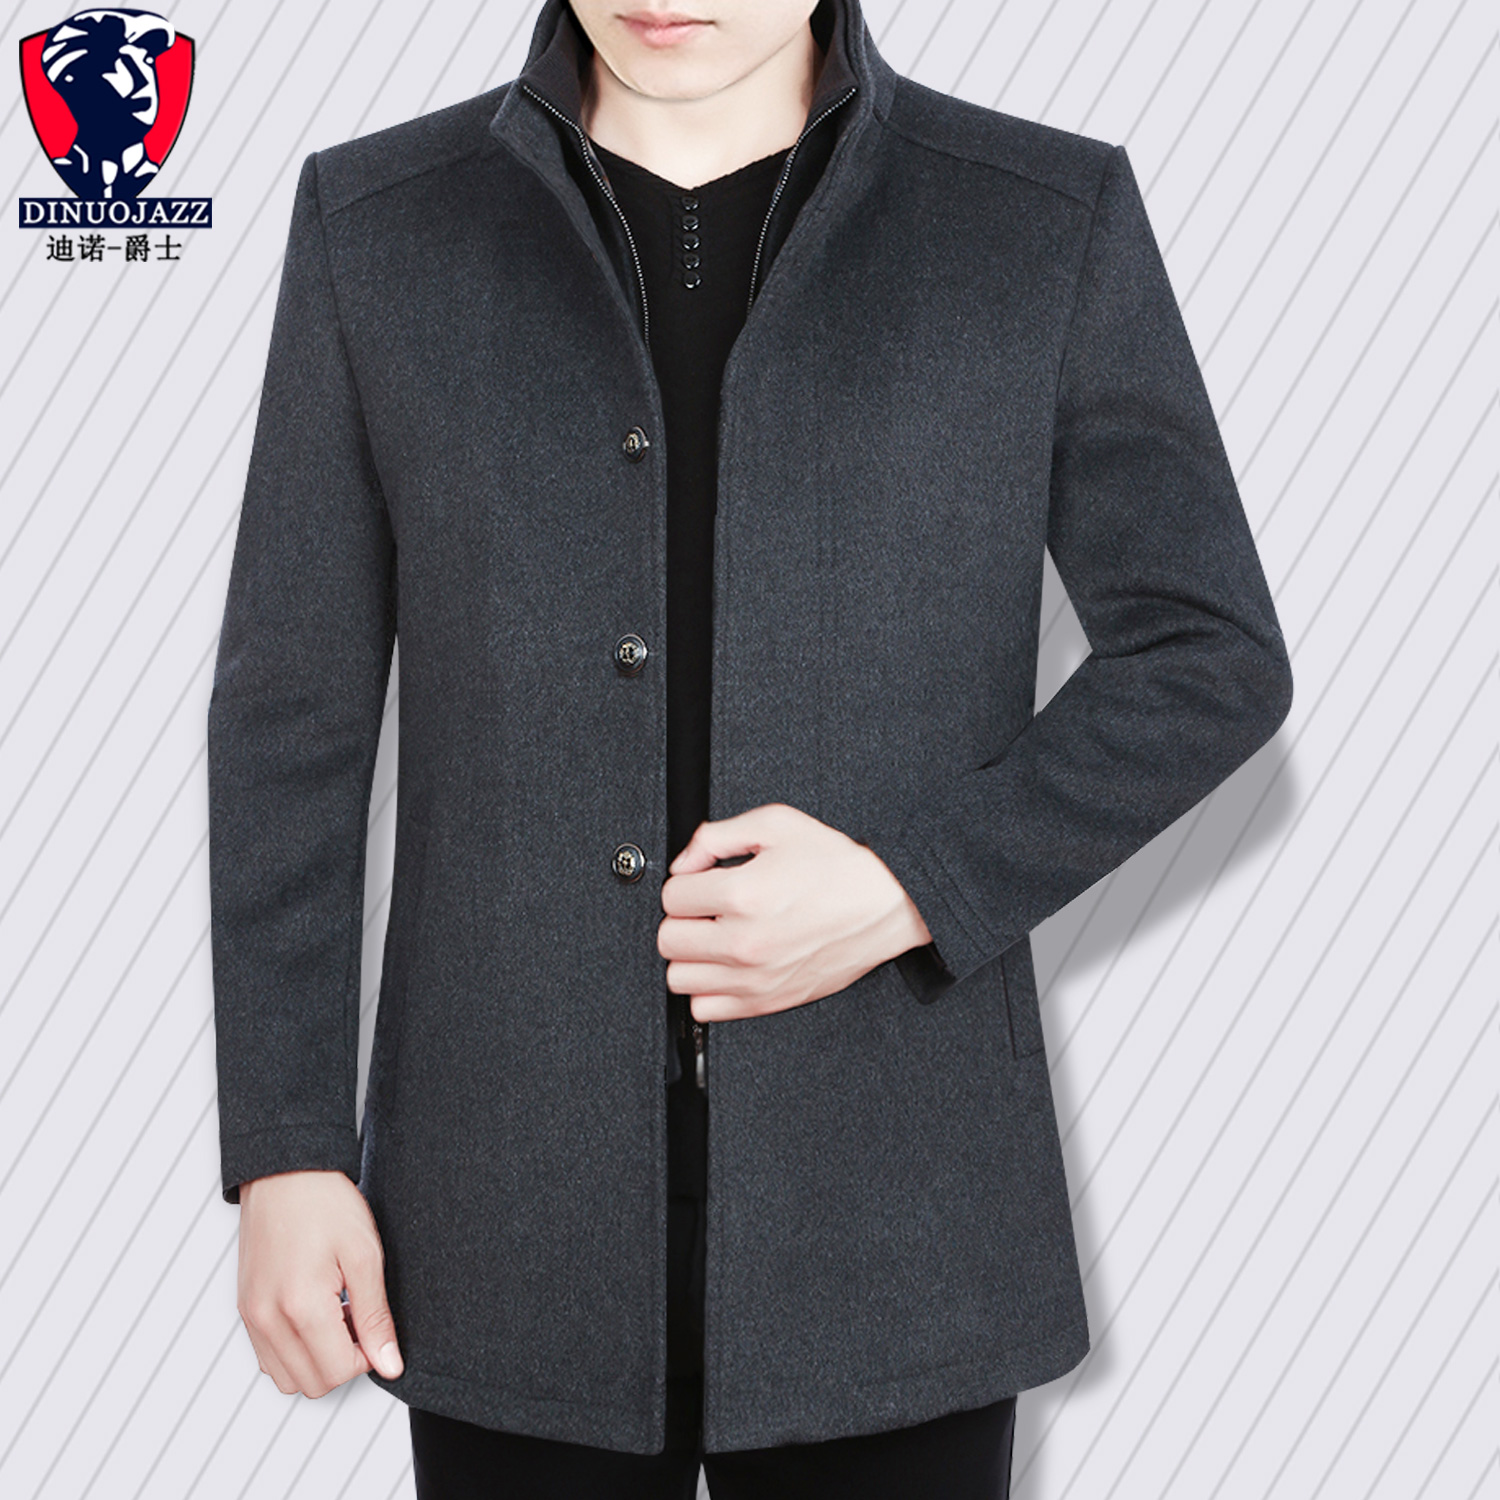 Men's Winter Coat Wool Warm Single-breasted Collar Gray Dark Blue Wine Red Cashmere Classic Men's Top Clothes